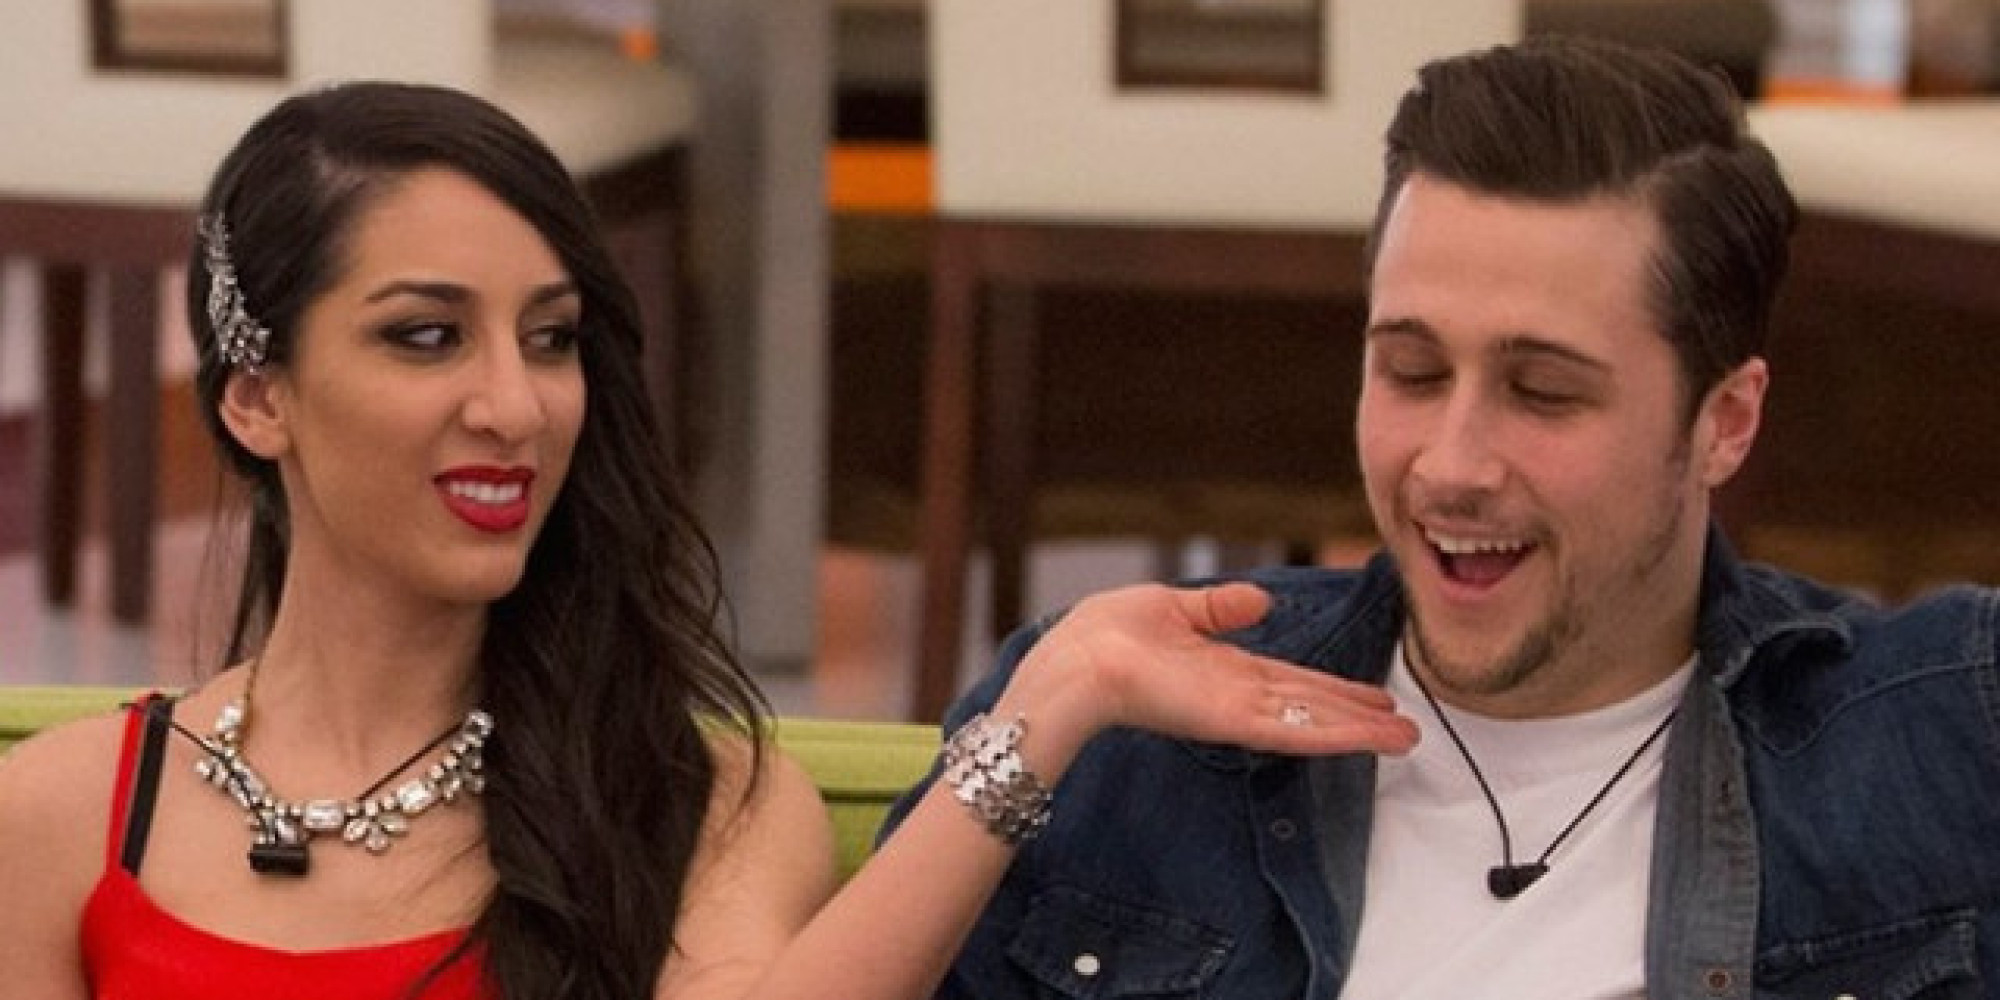 big brother canada 2 jon and neda dating Canada's big brother 2 winner jon pardy returned  jon pardy is dating fellow houseguest neda  contestants neda kalantar and jon pardy are now dating.